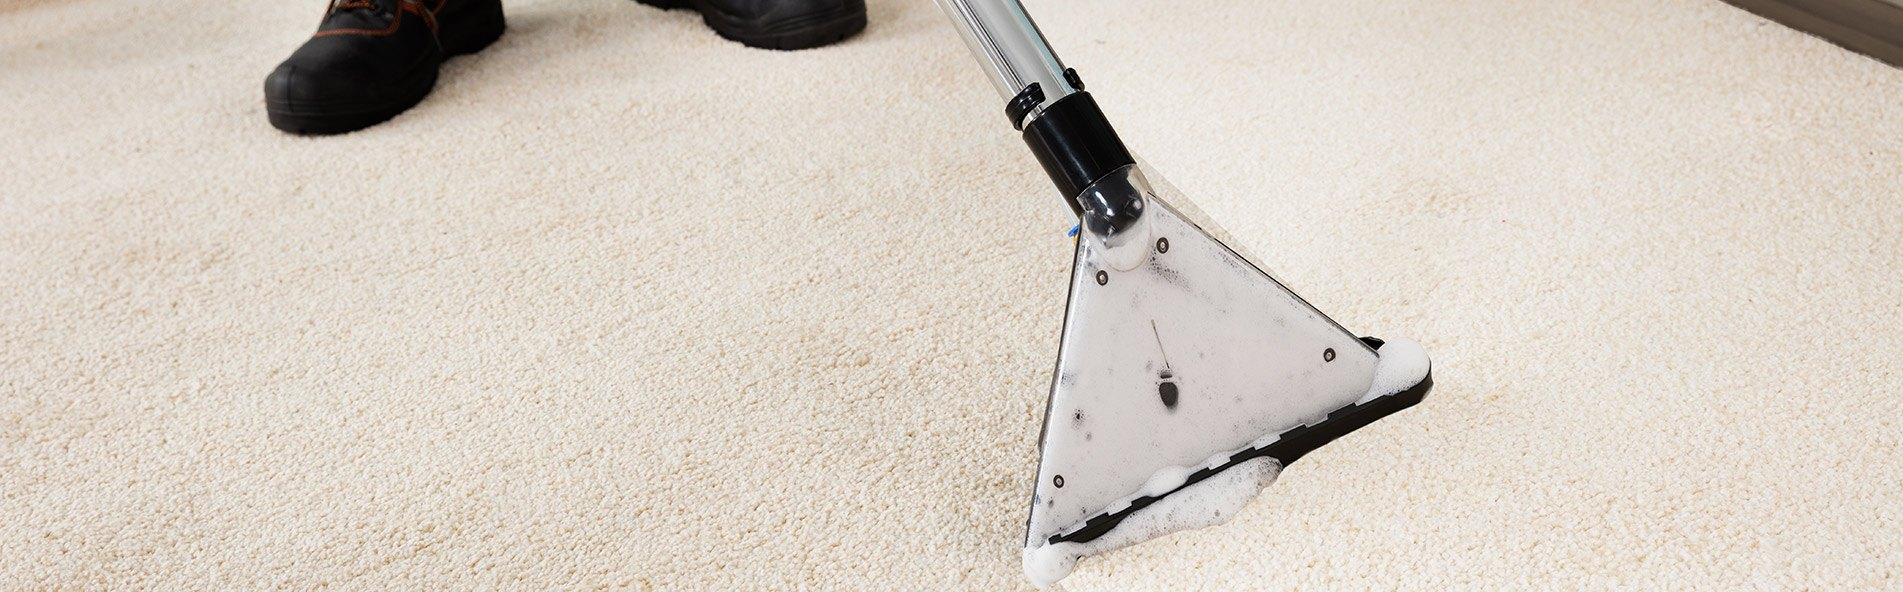 Carpet-cleaning-banner-image